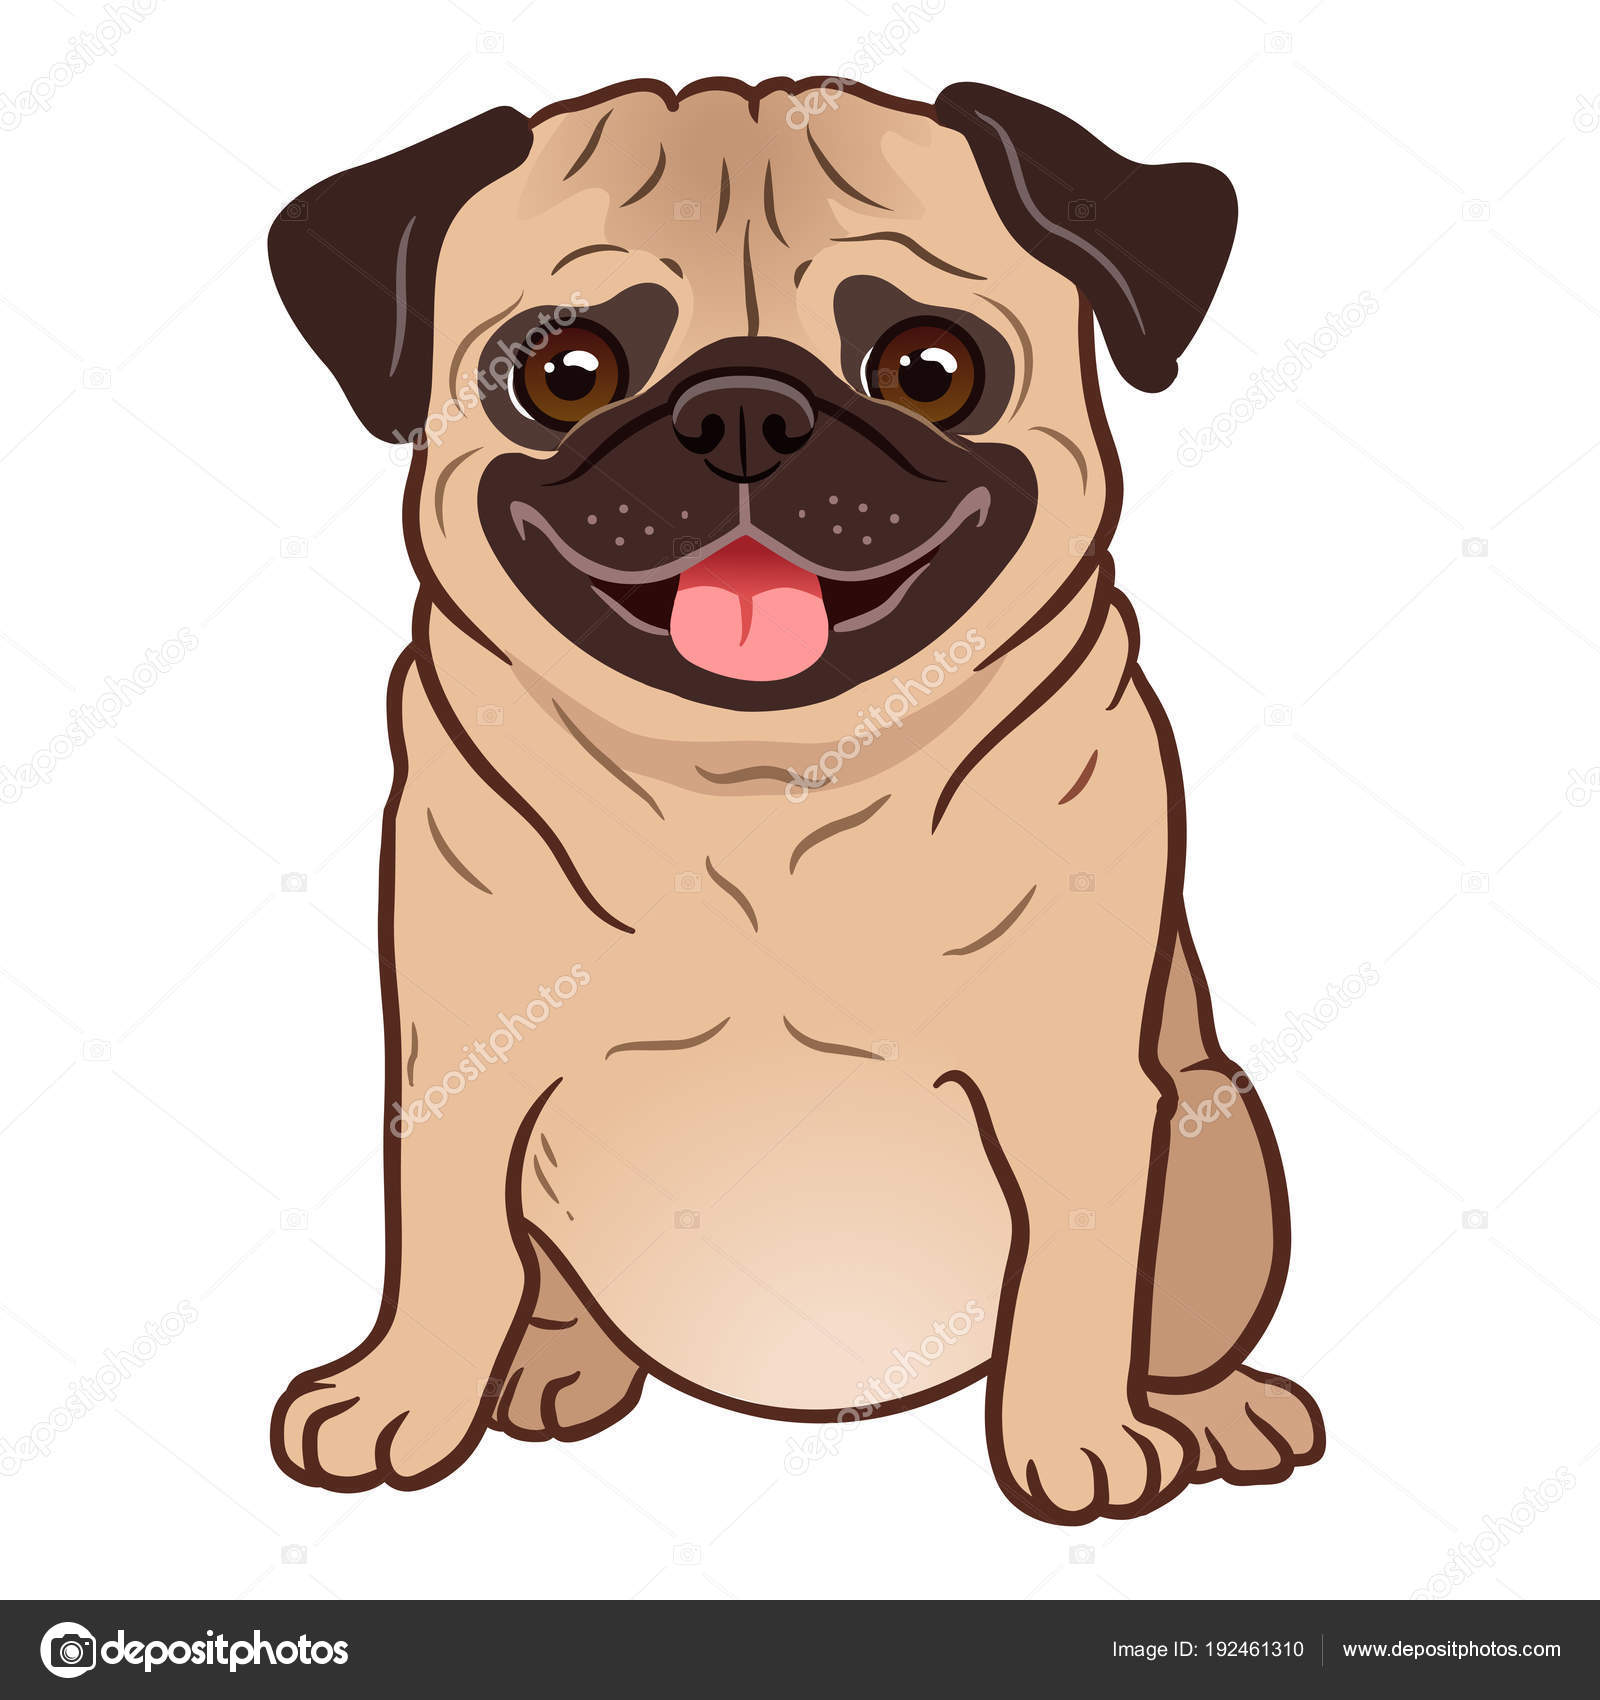 Best Rottweiler Chubby Adorable Dog - depositphotos_192461310-stock-illustration-pug-dog-cartoon-illustration-cute  Image_19649  .jpg